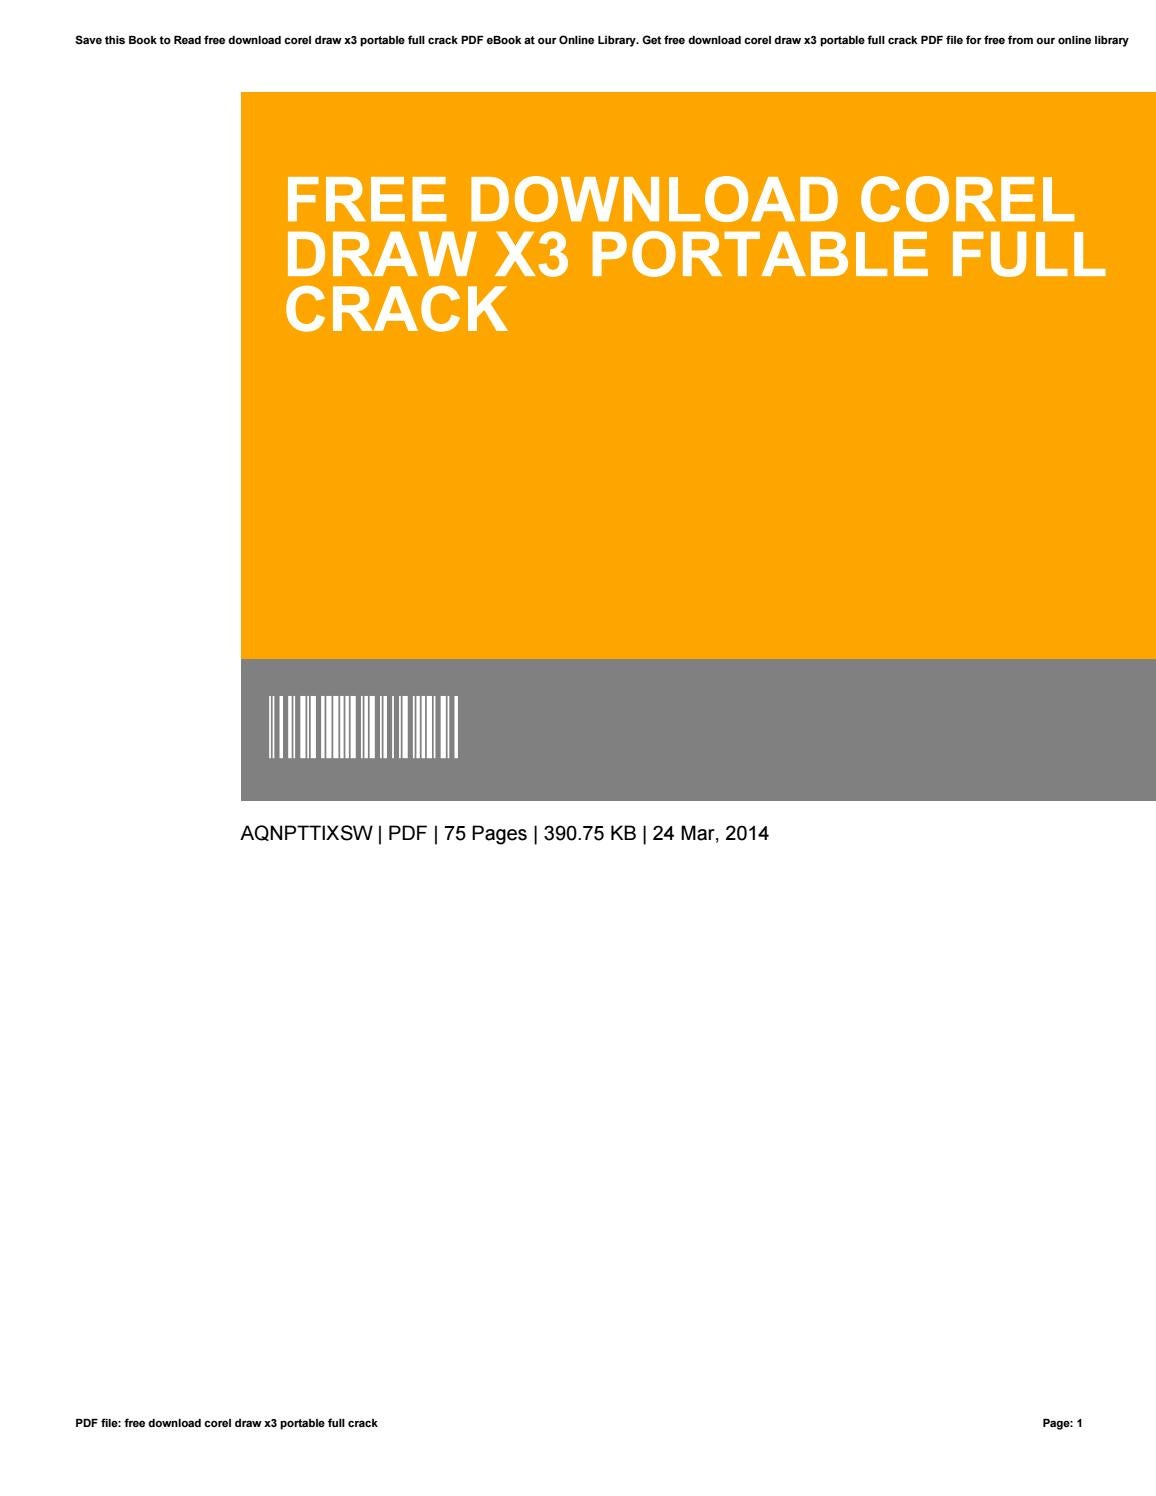 Free Download Corel Draw X3 Portable Full Crack By Te866 Issuu